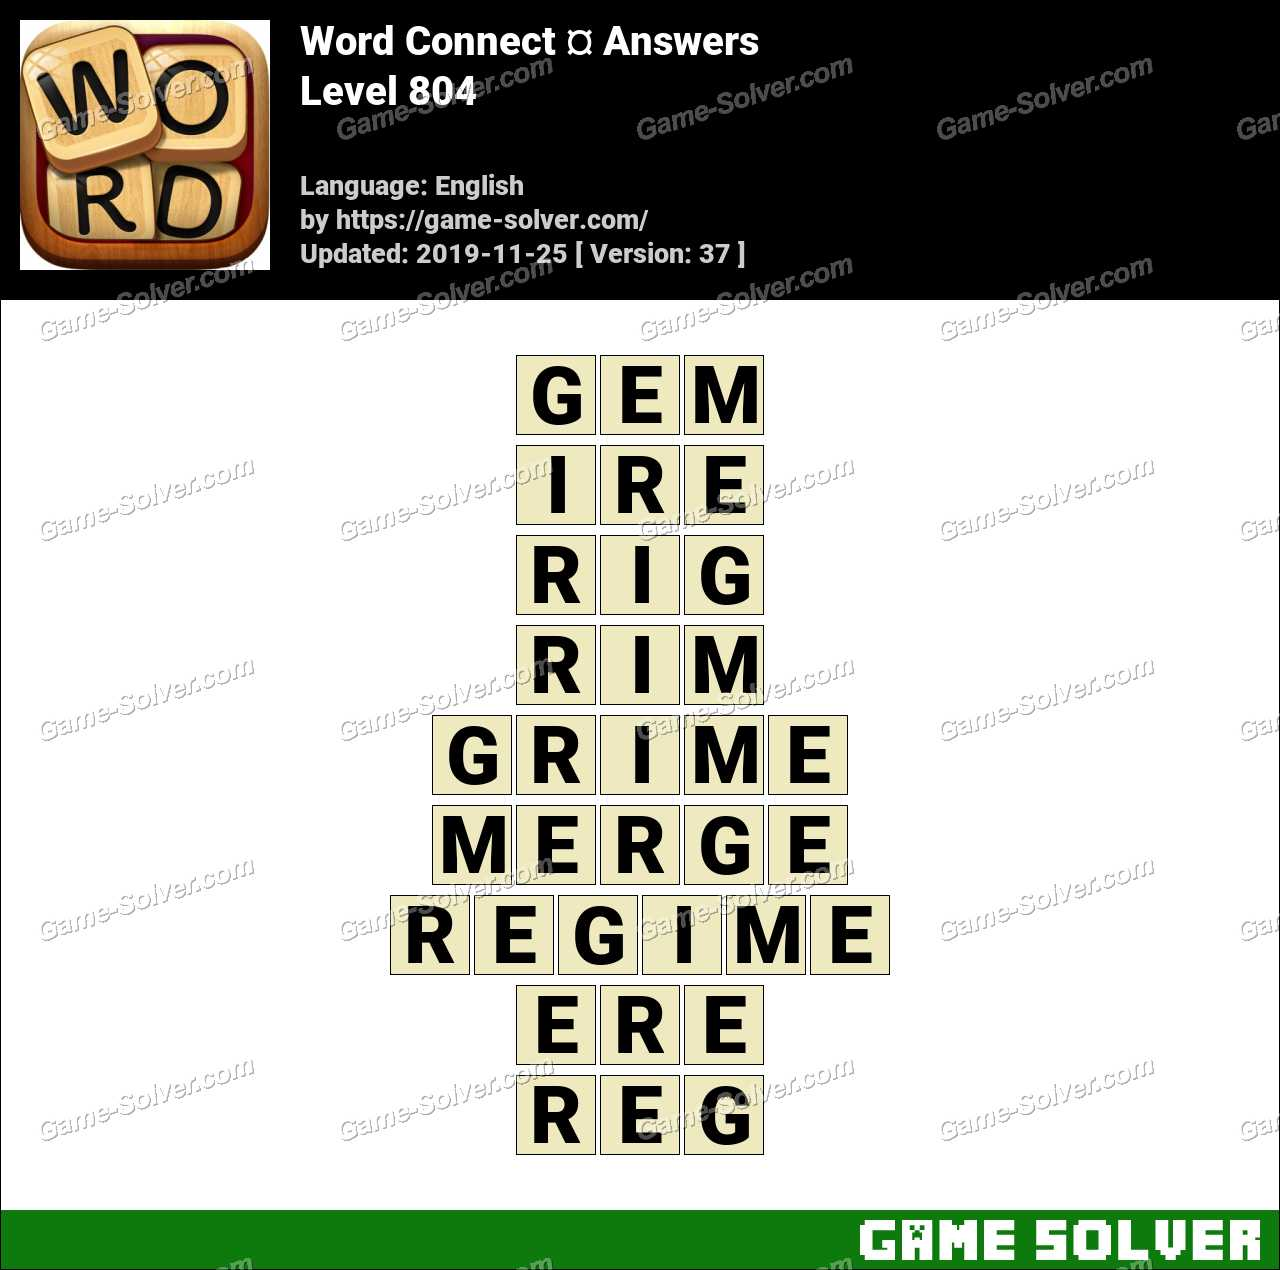 Word Connect Level 804 Answers